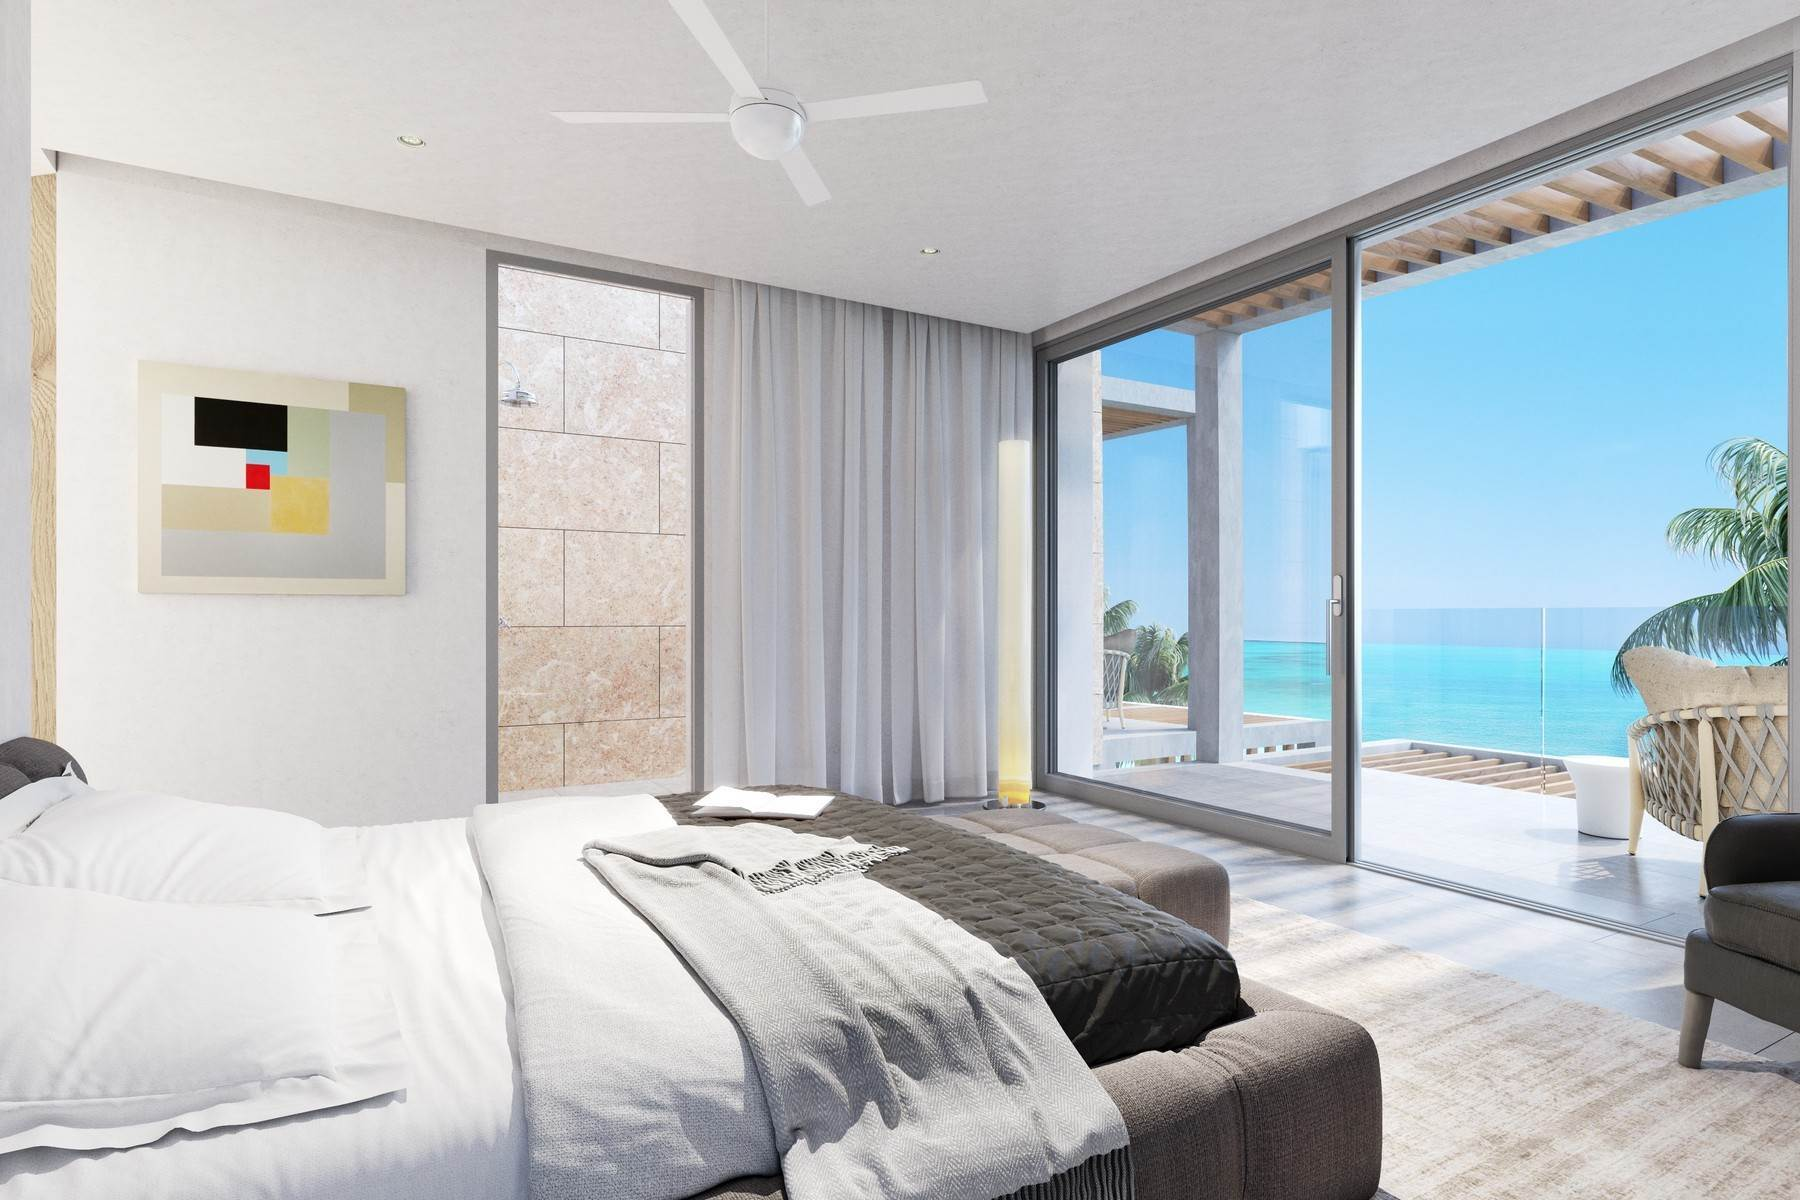 7. Single Family Homes for Sale at LONG BAY BEACH DUNE VILLA 1 AT SOUTH BANK - THE OCEAN ESTATE South Bank, Long Bay, Providenciales Turks And Caicos Islands